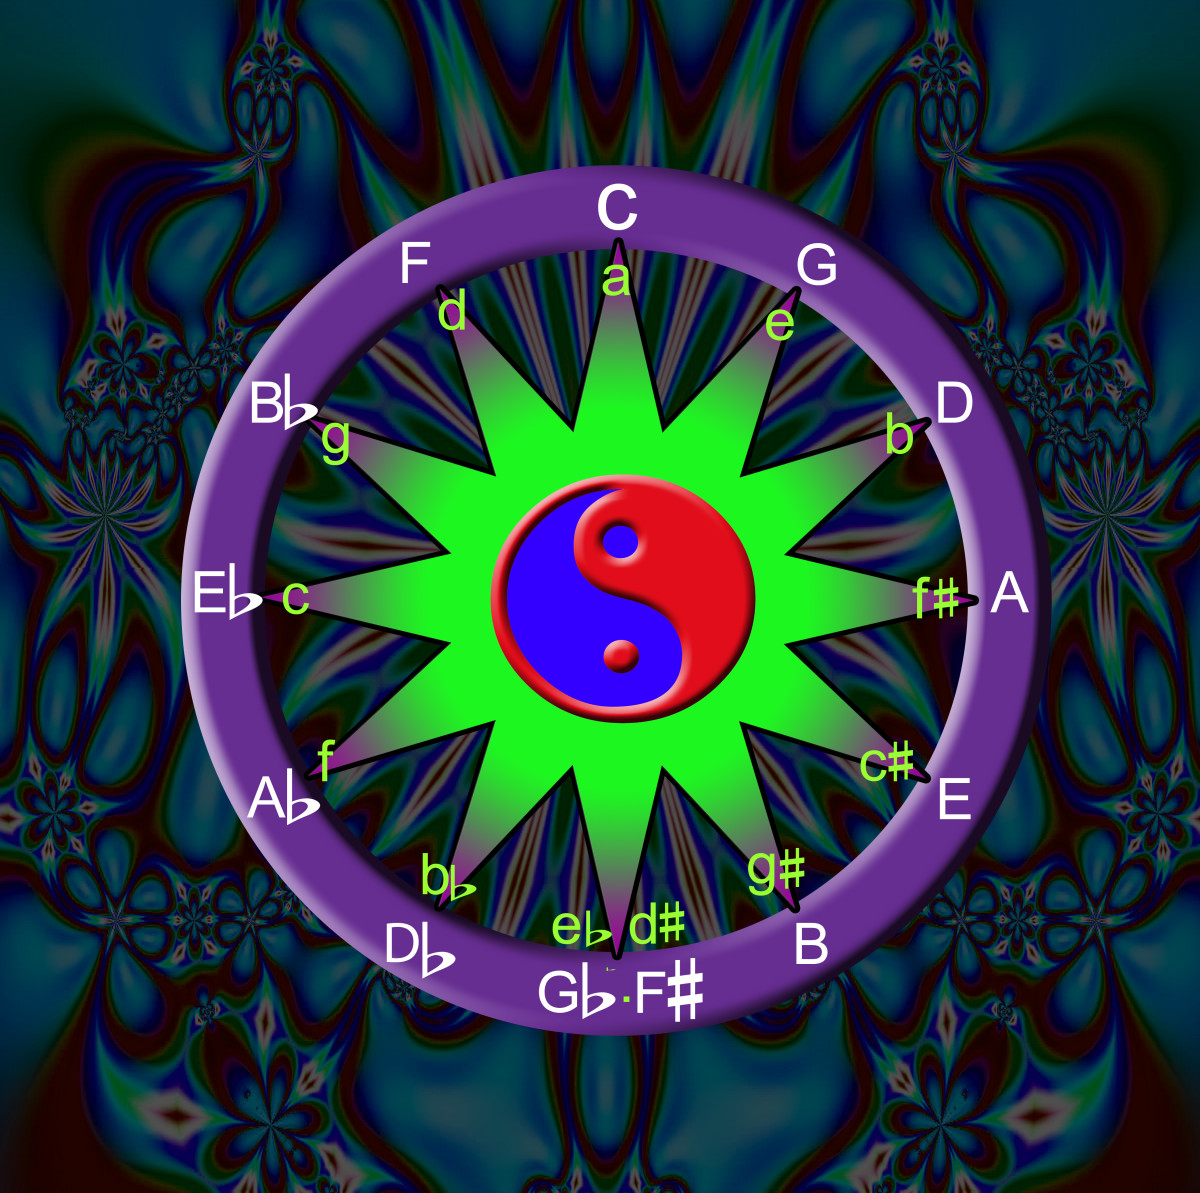 Major and Minor Key Relationships in Music and the Circle of Fifths